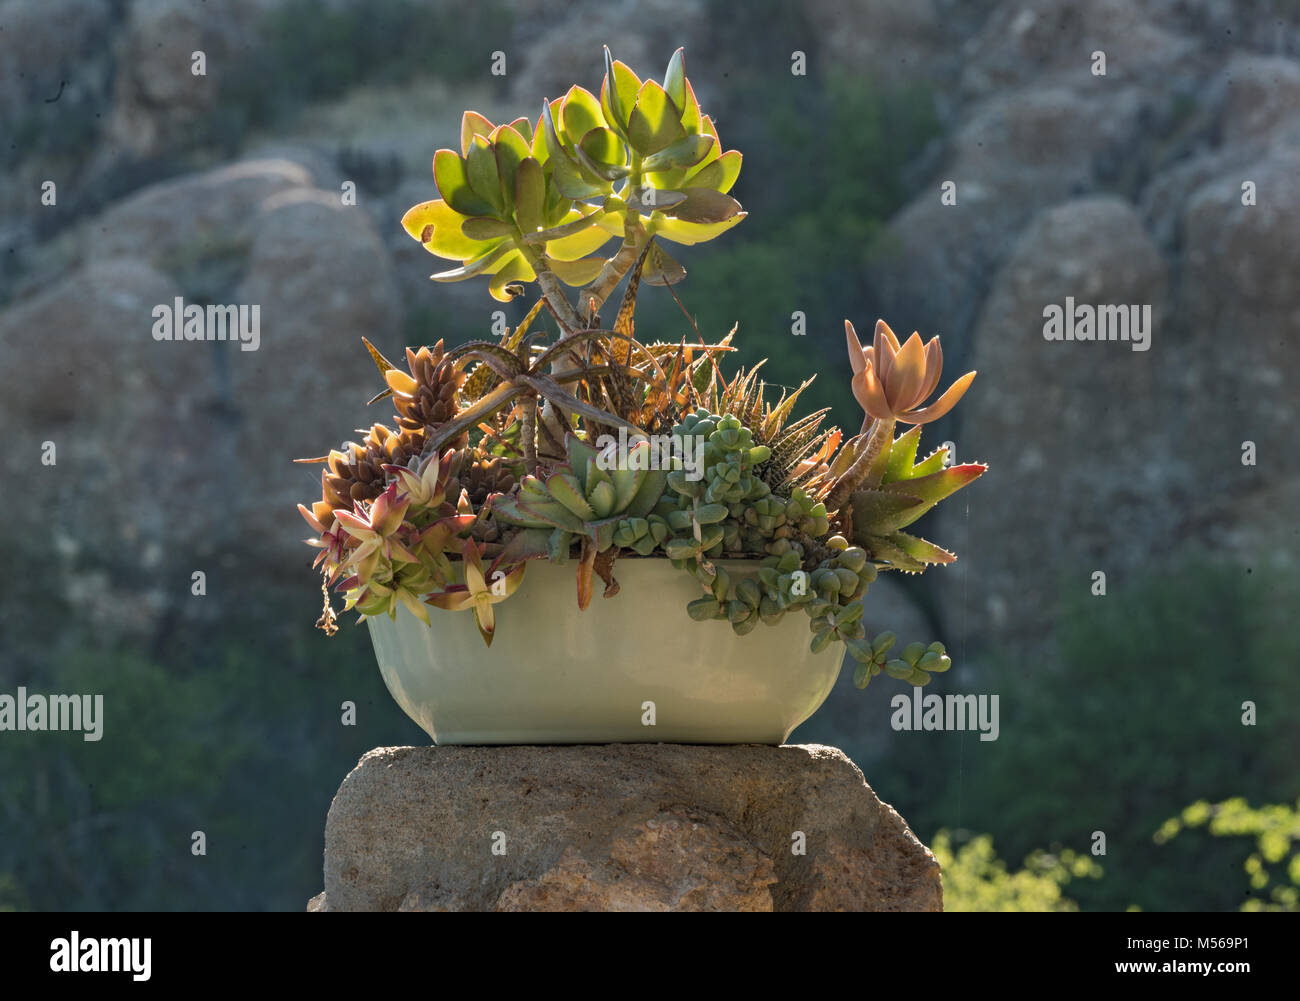 A ceramic flower bowl with different succulents - Stock Image